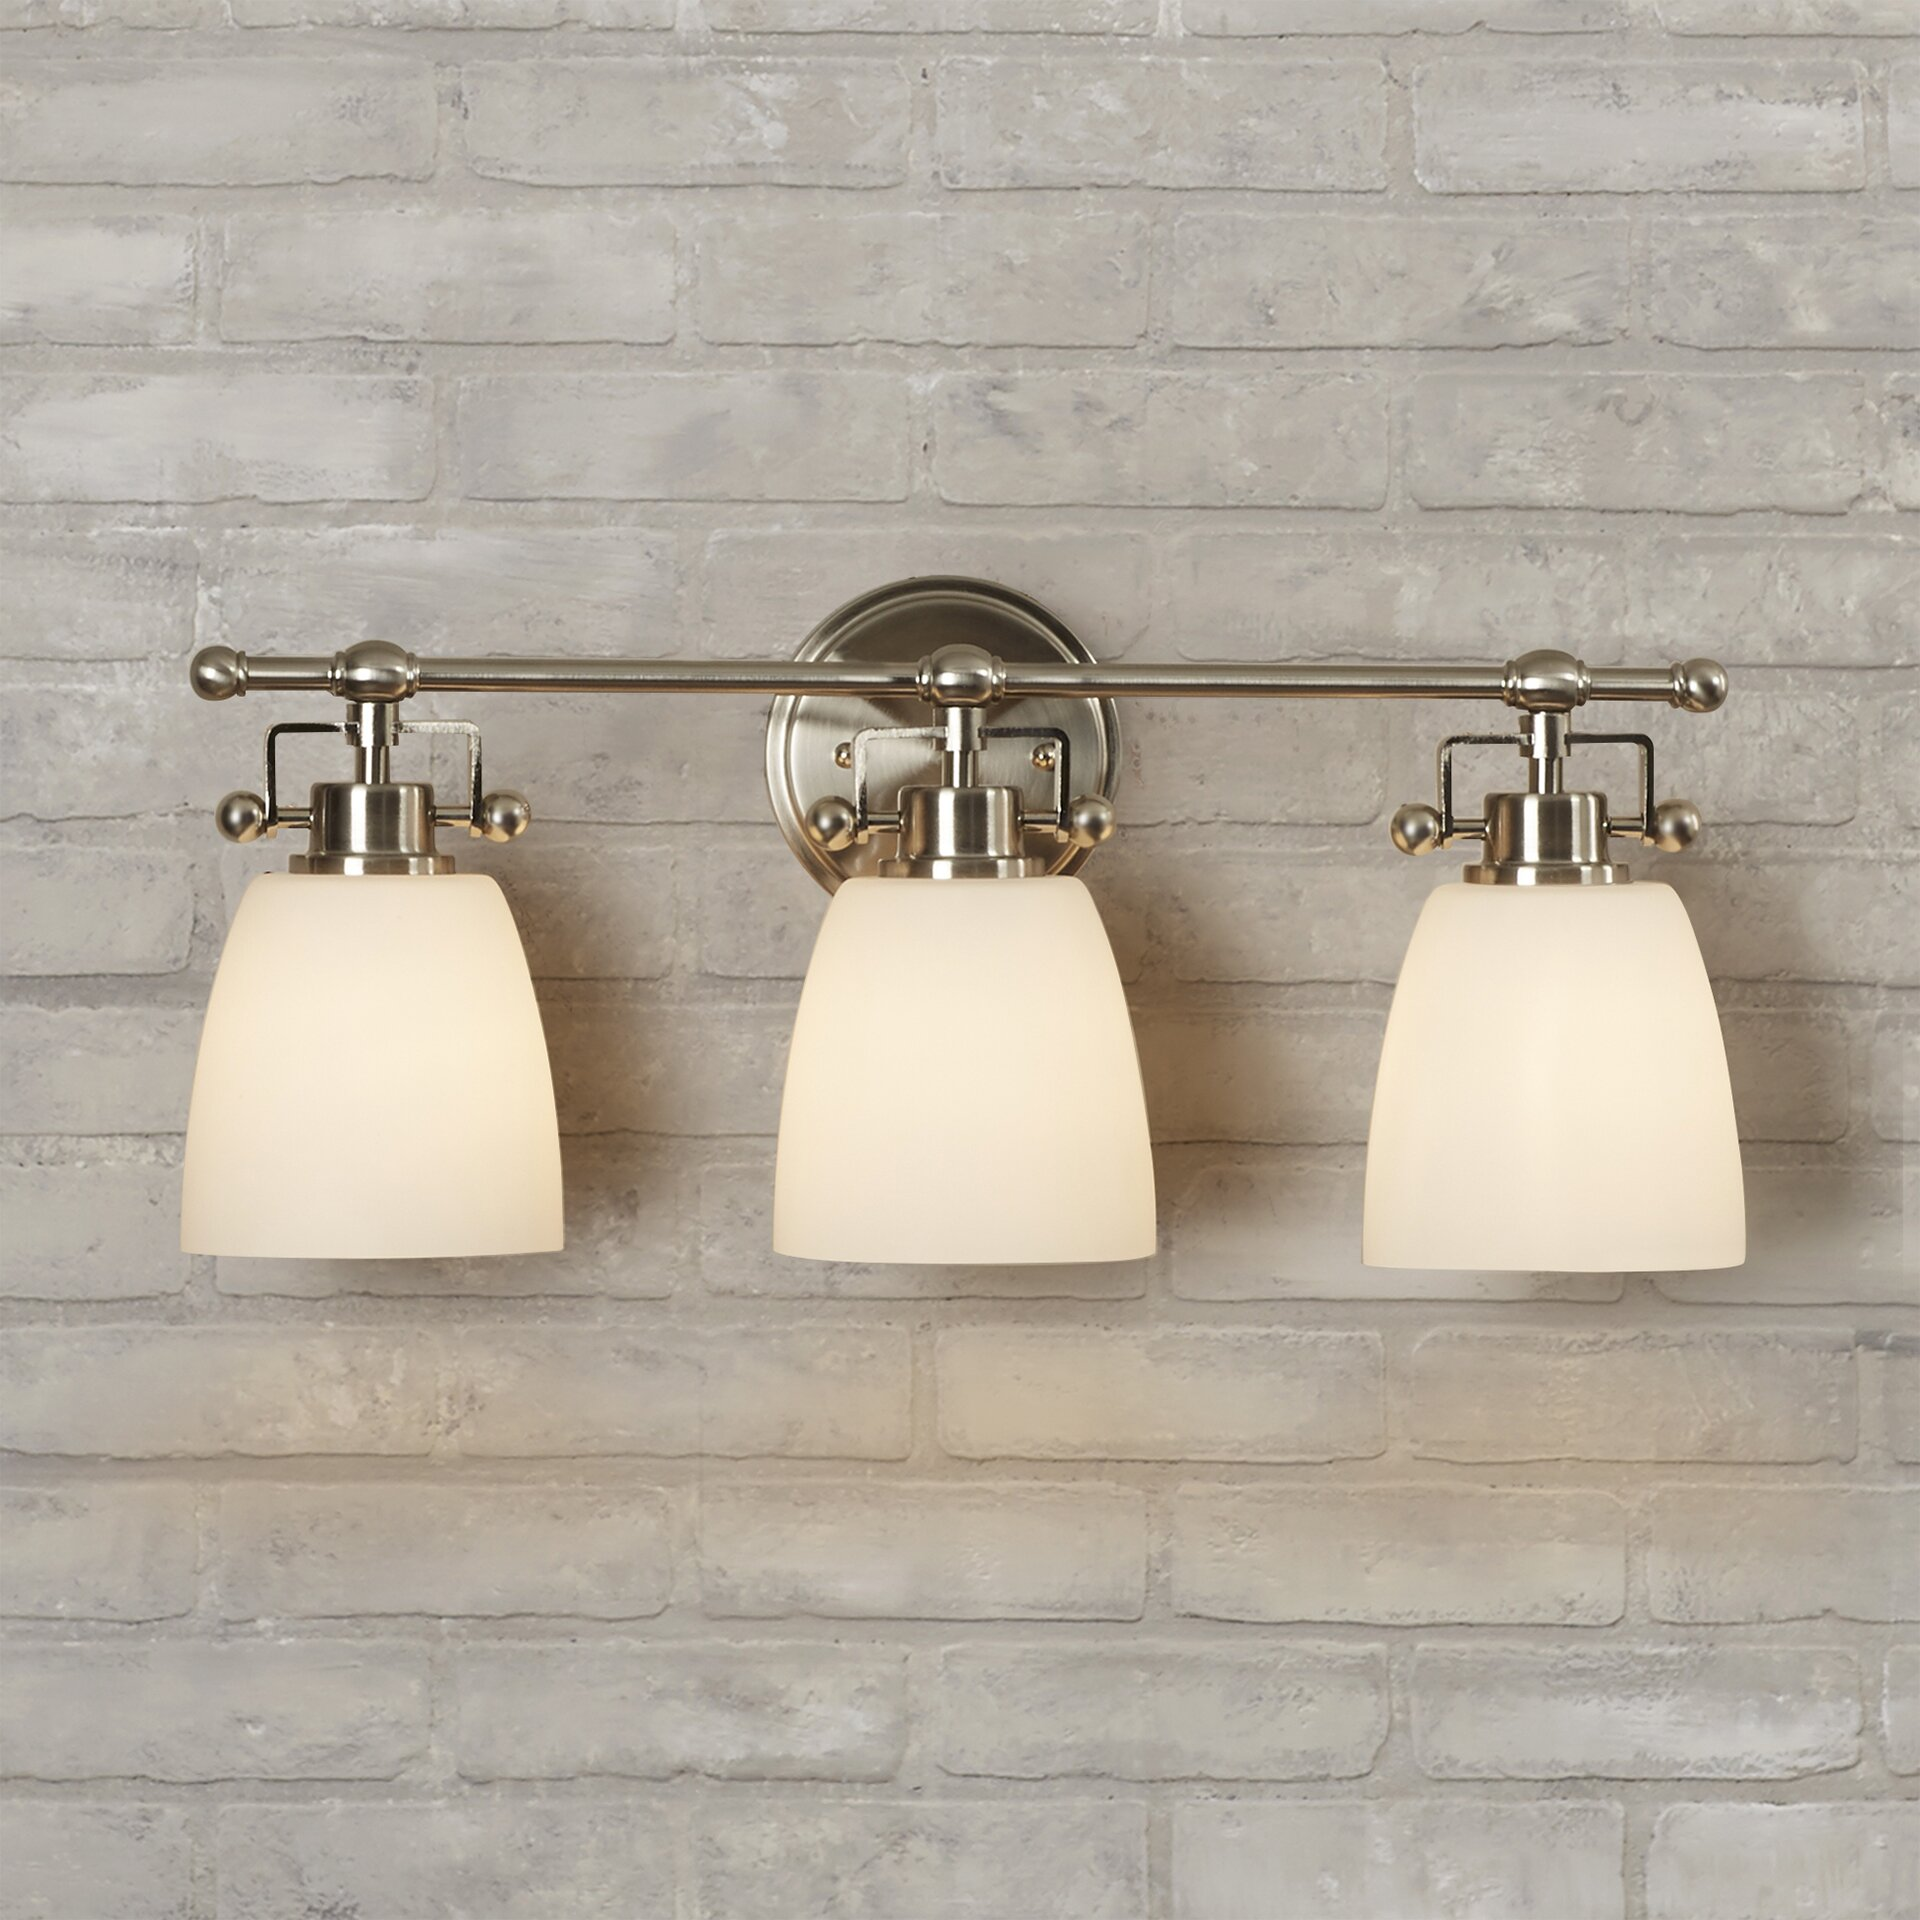 Three Light Bathroom Vanity Light: Brayden Studio Meyer 3 Light Bath Vanity Light & Reviews